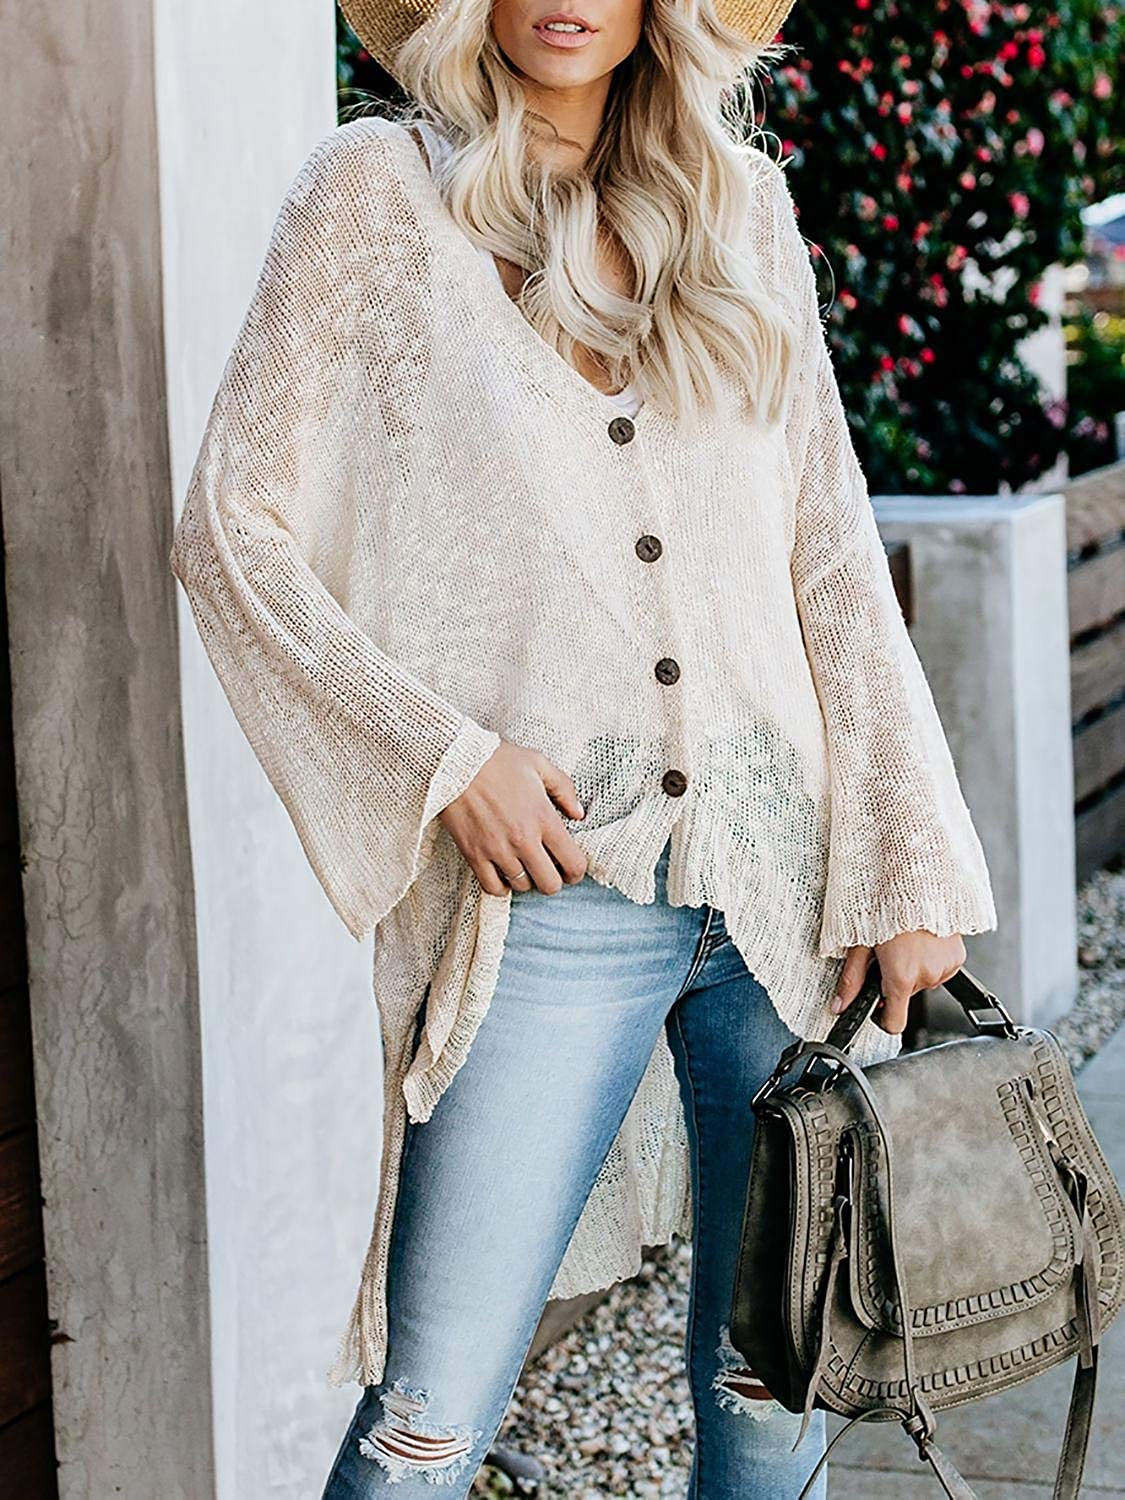 Misassy Womens Summer Boho Button Down Knit Sheer Cardigans Blouse Loose Lightweight Sweater Coat